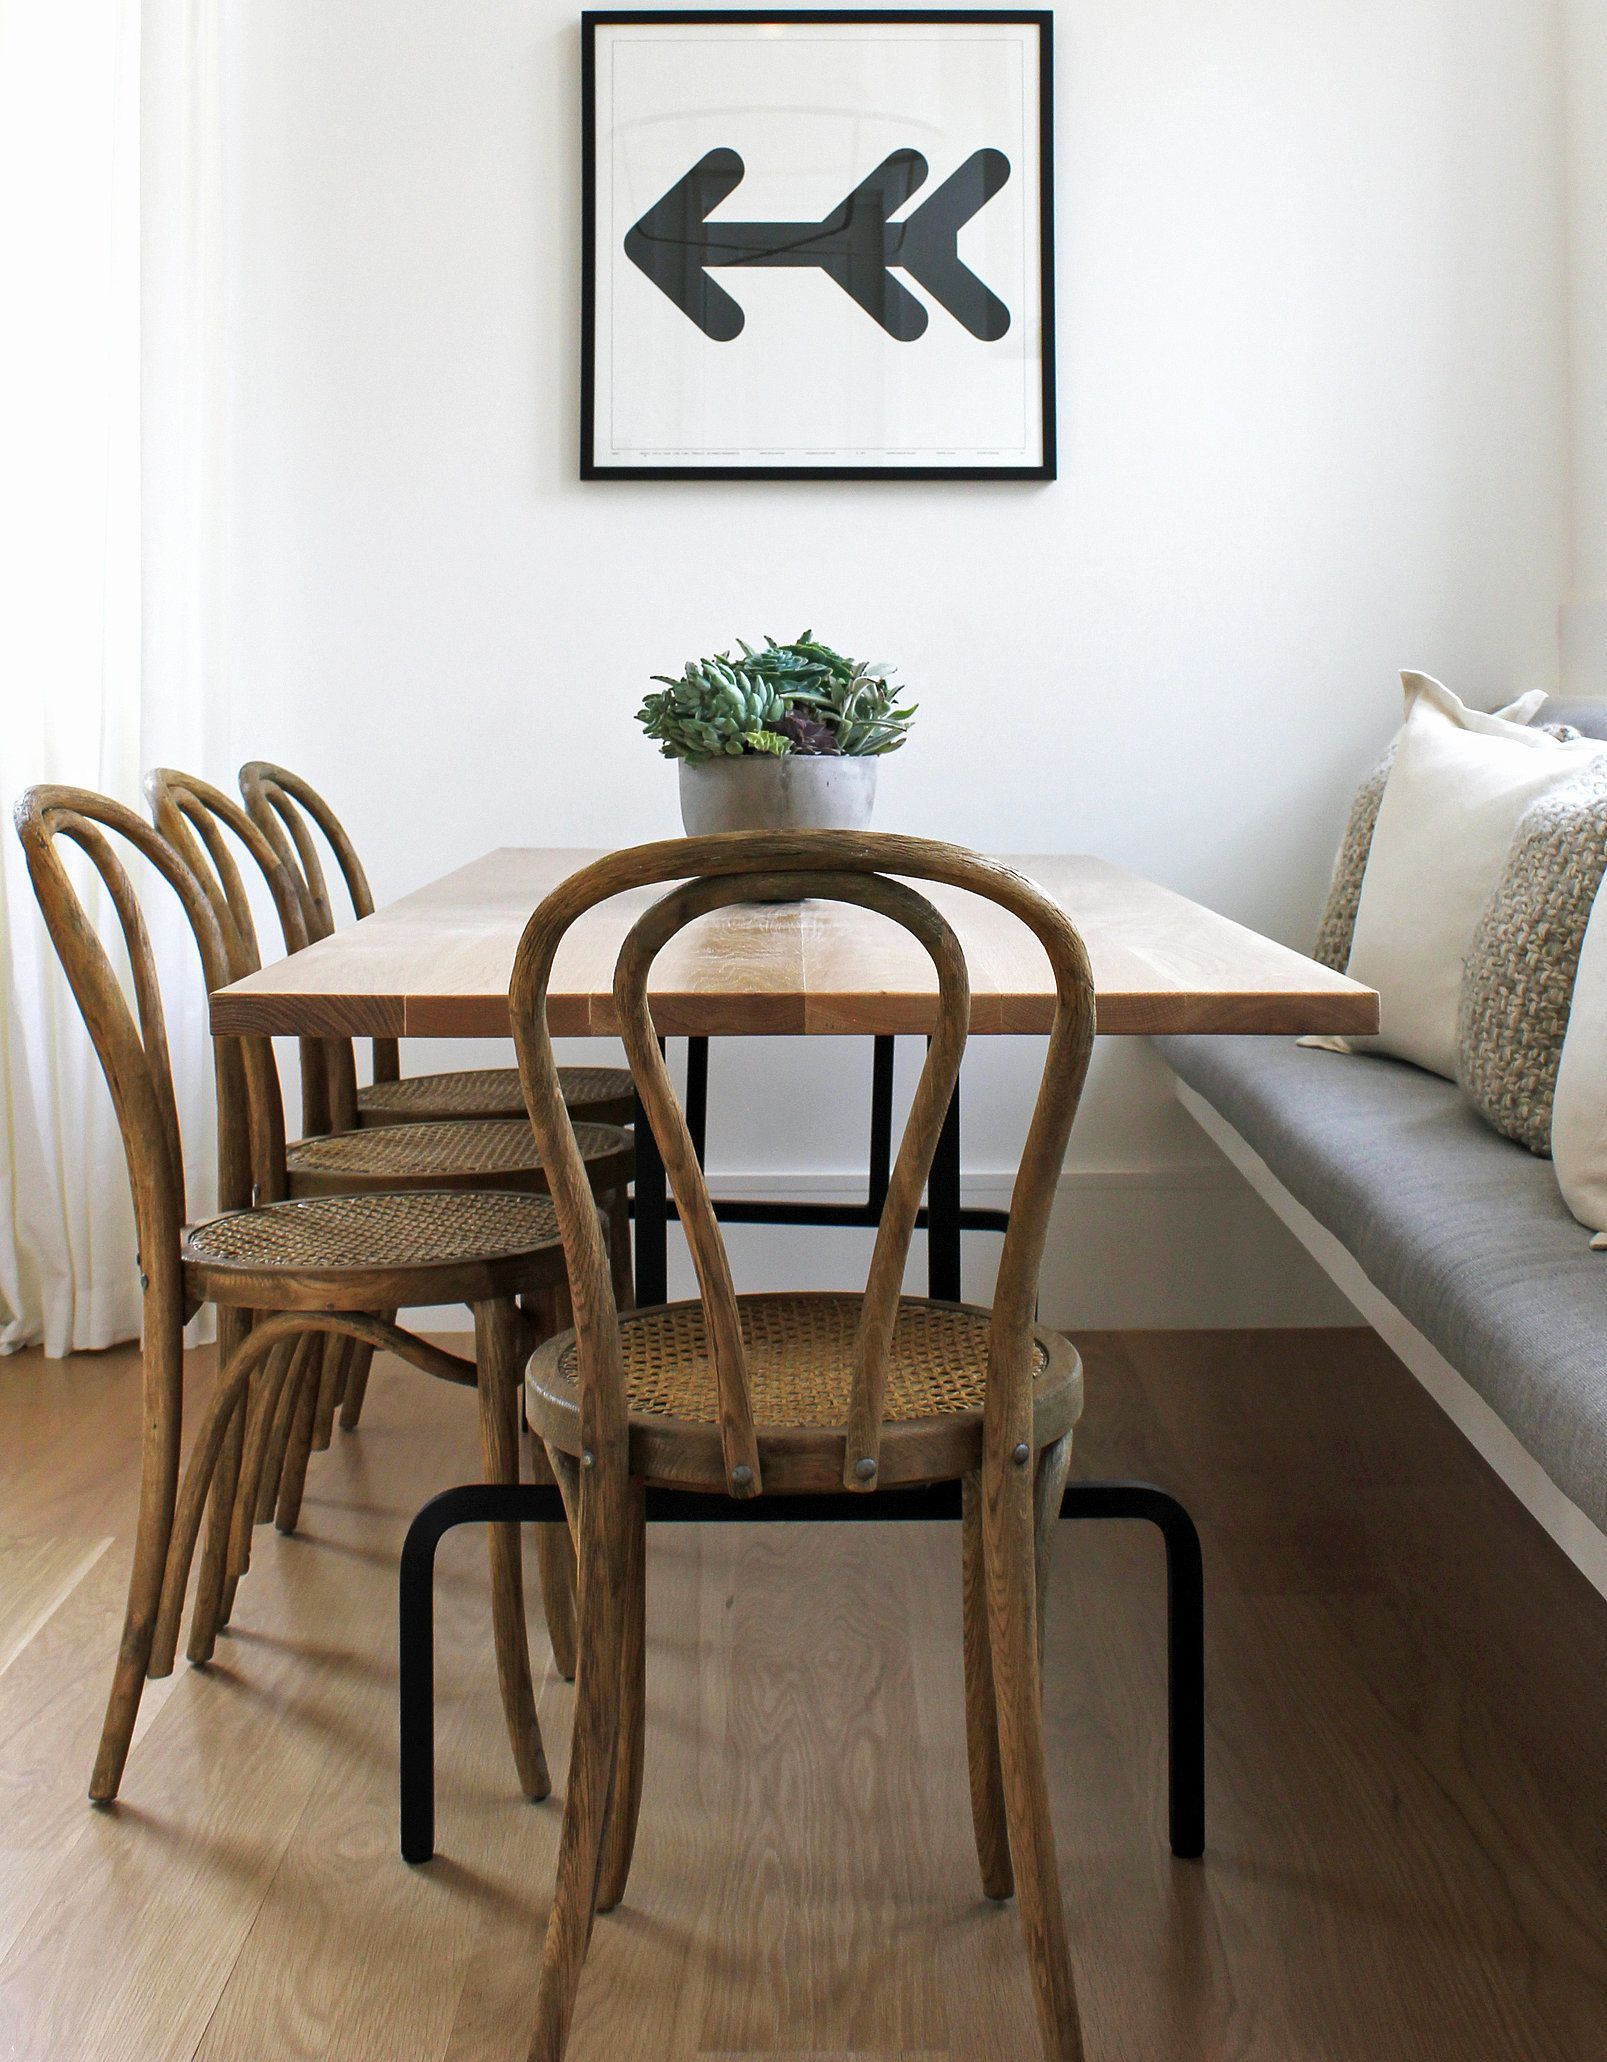 Bench Dining Table To Save Space